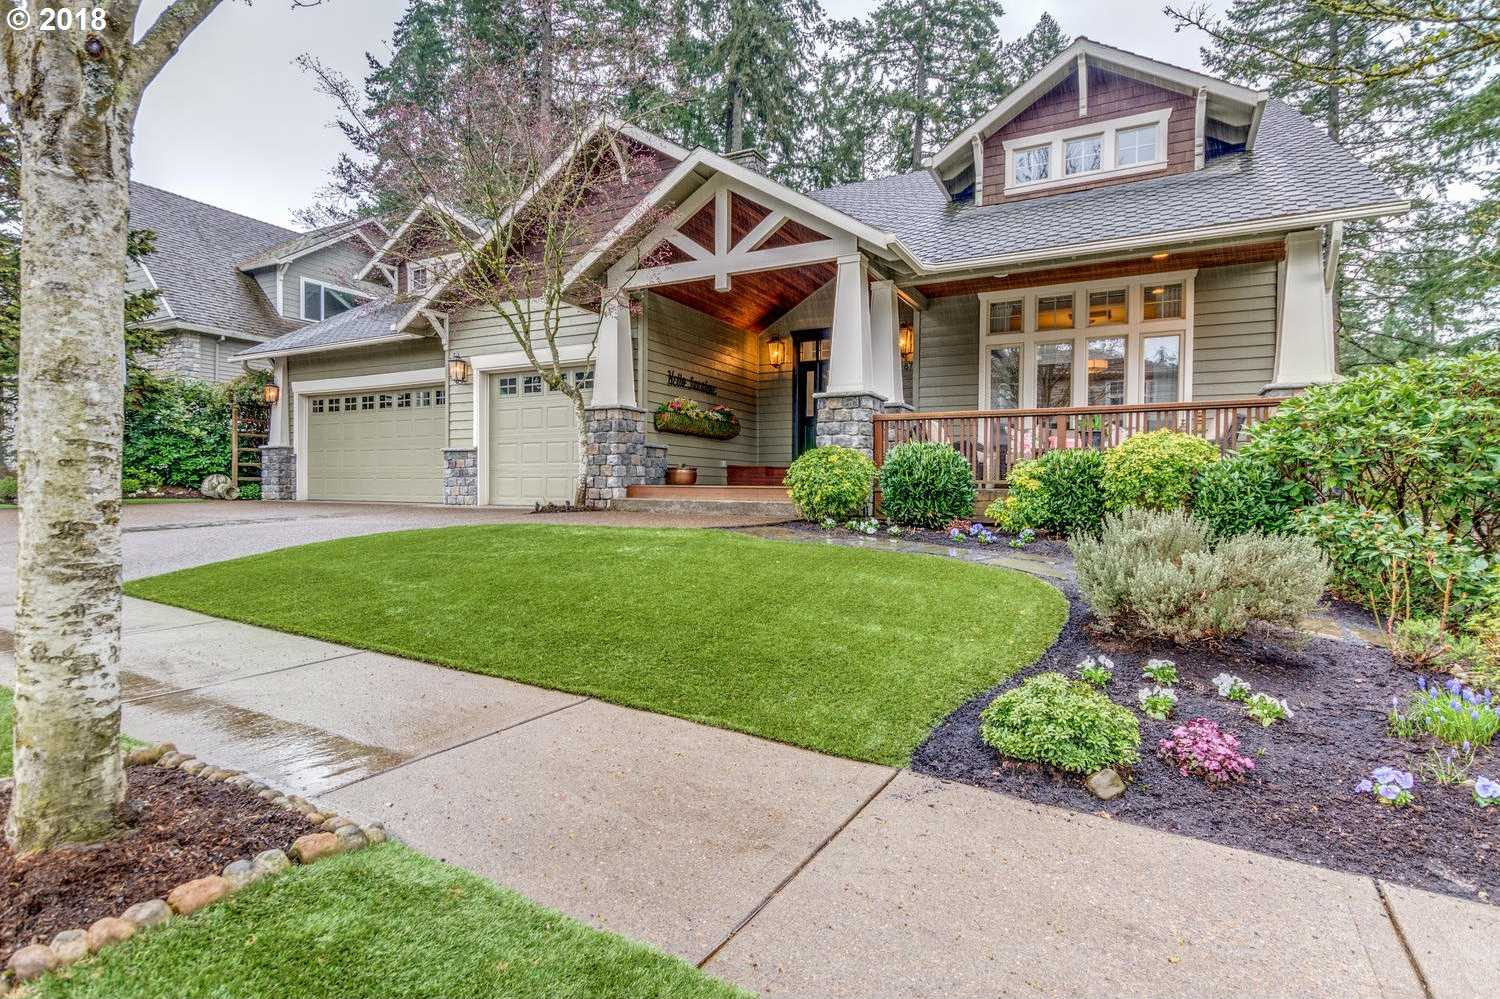 $1,050,000 - 5Br/3Ba -  for Sale in Victoria Woods, Tualatin